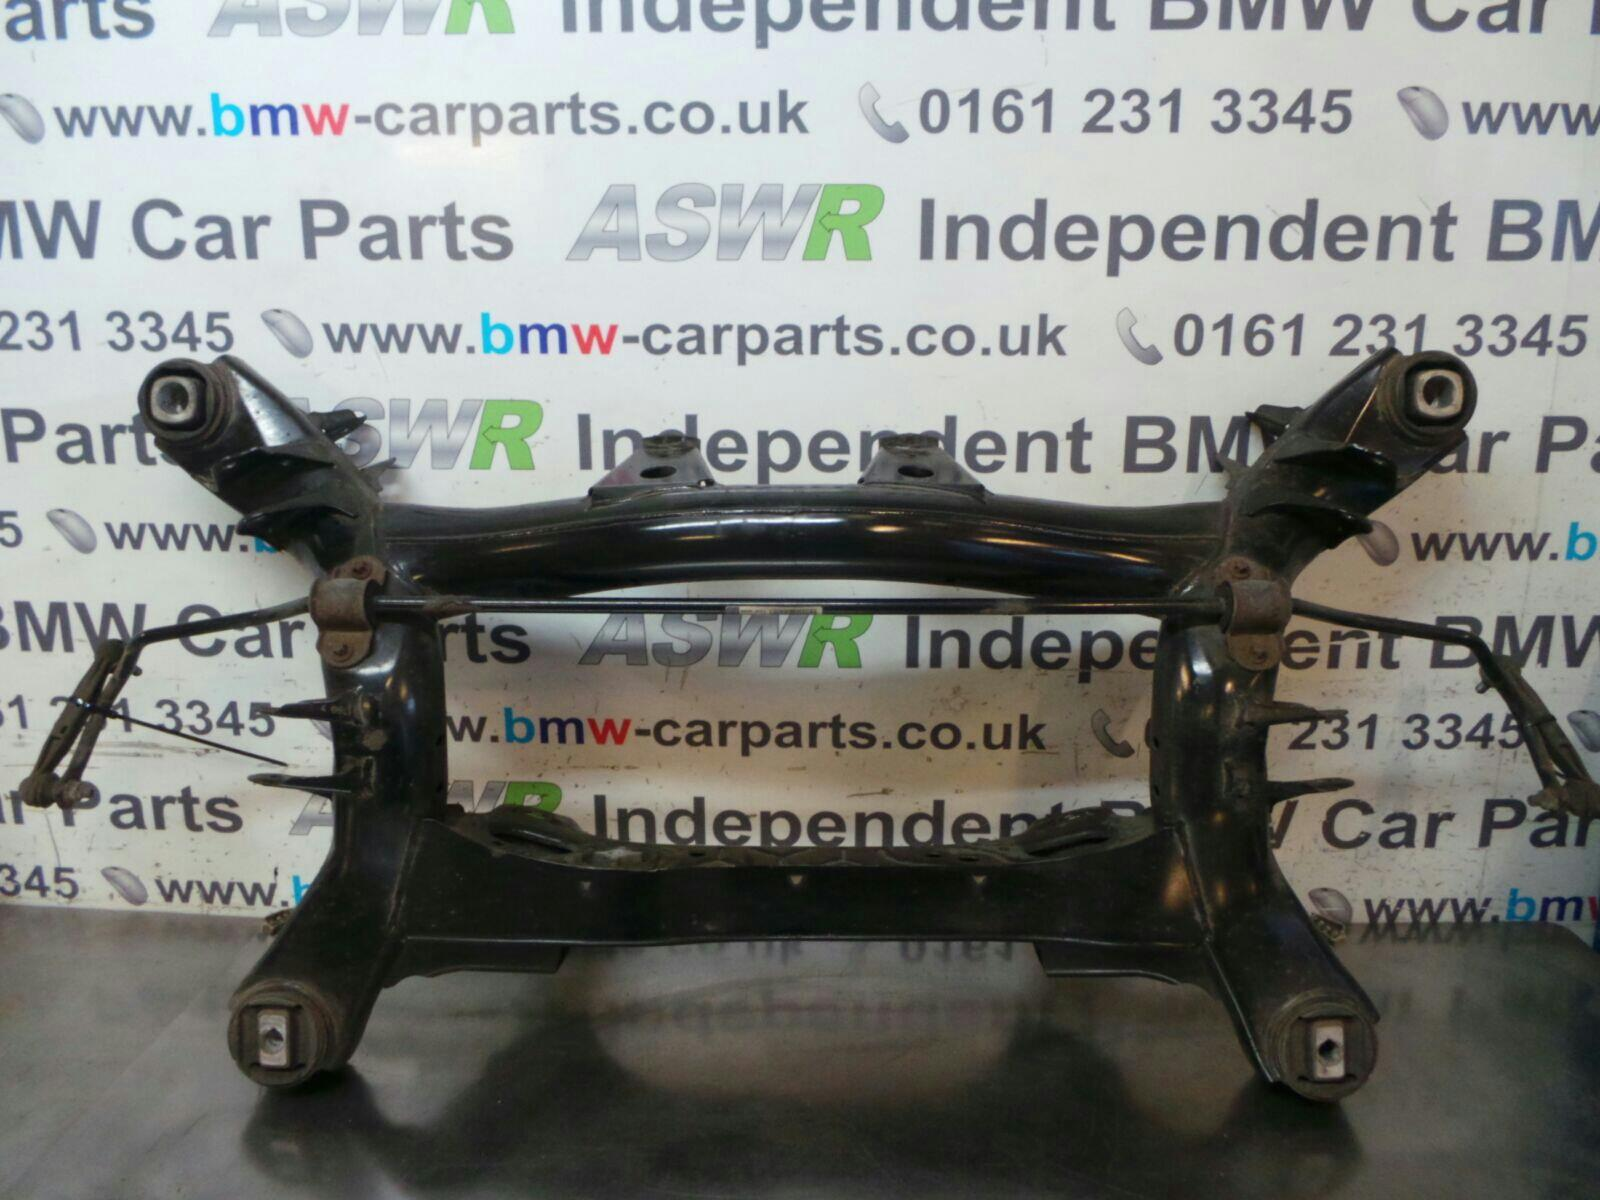 BMW F20 F21 F30 F31 1/3 SERIES Rear Subframe/Diff Carrier 33316792505